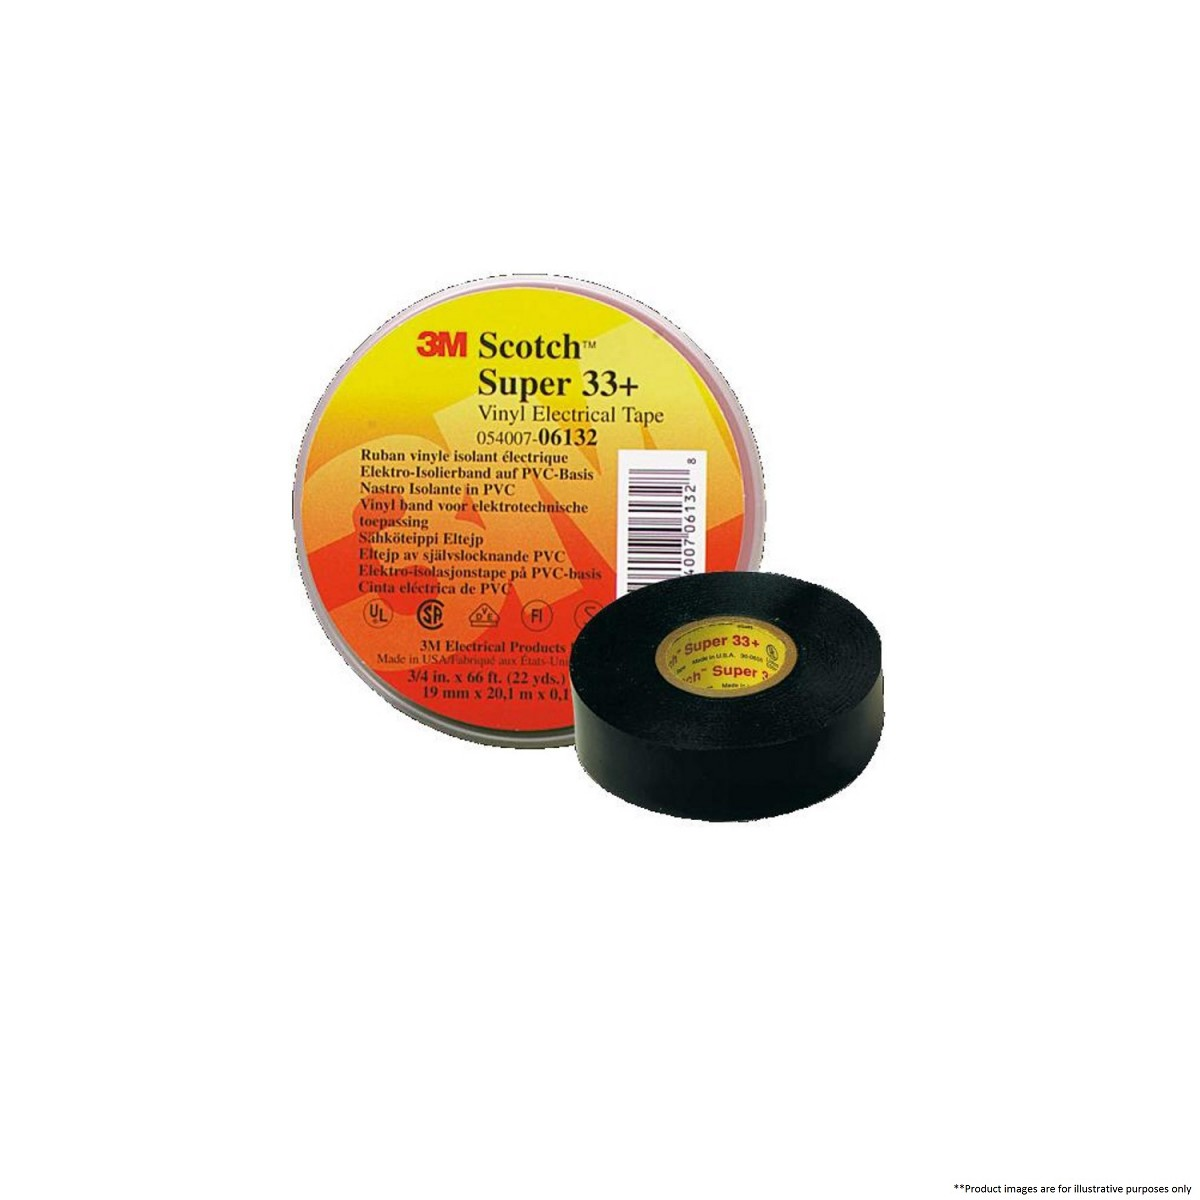 3M SCOTCH SUPER 33+ VINYL ELECTRICAL TAPE - 3M - By Brands